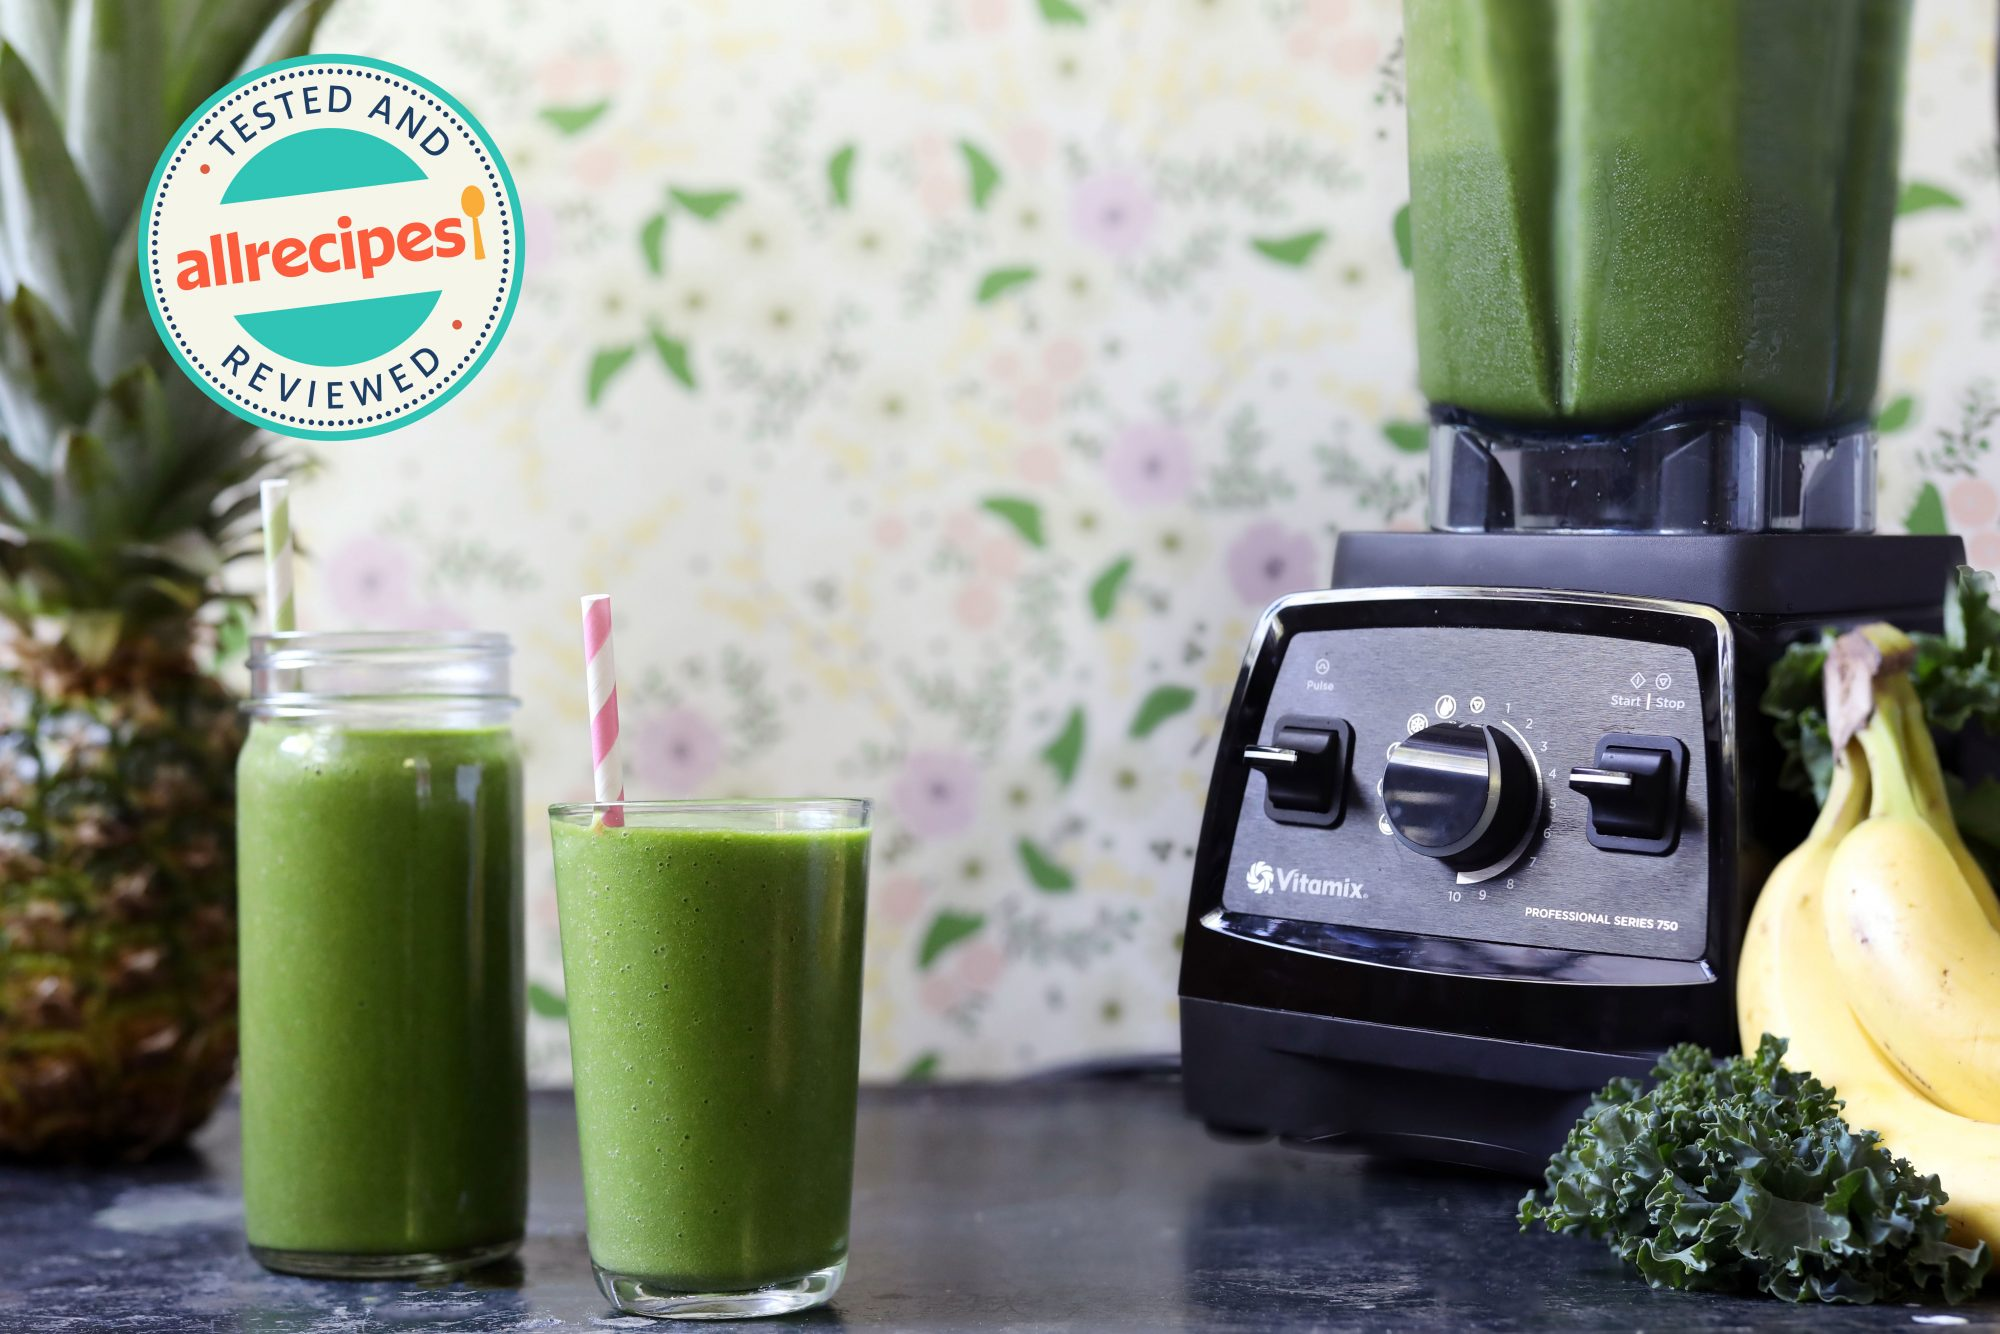 vitamix with green smoothie inside next to banana, kale, pineapple, and two green smoothies in glasses